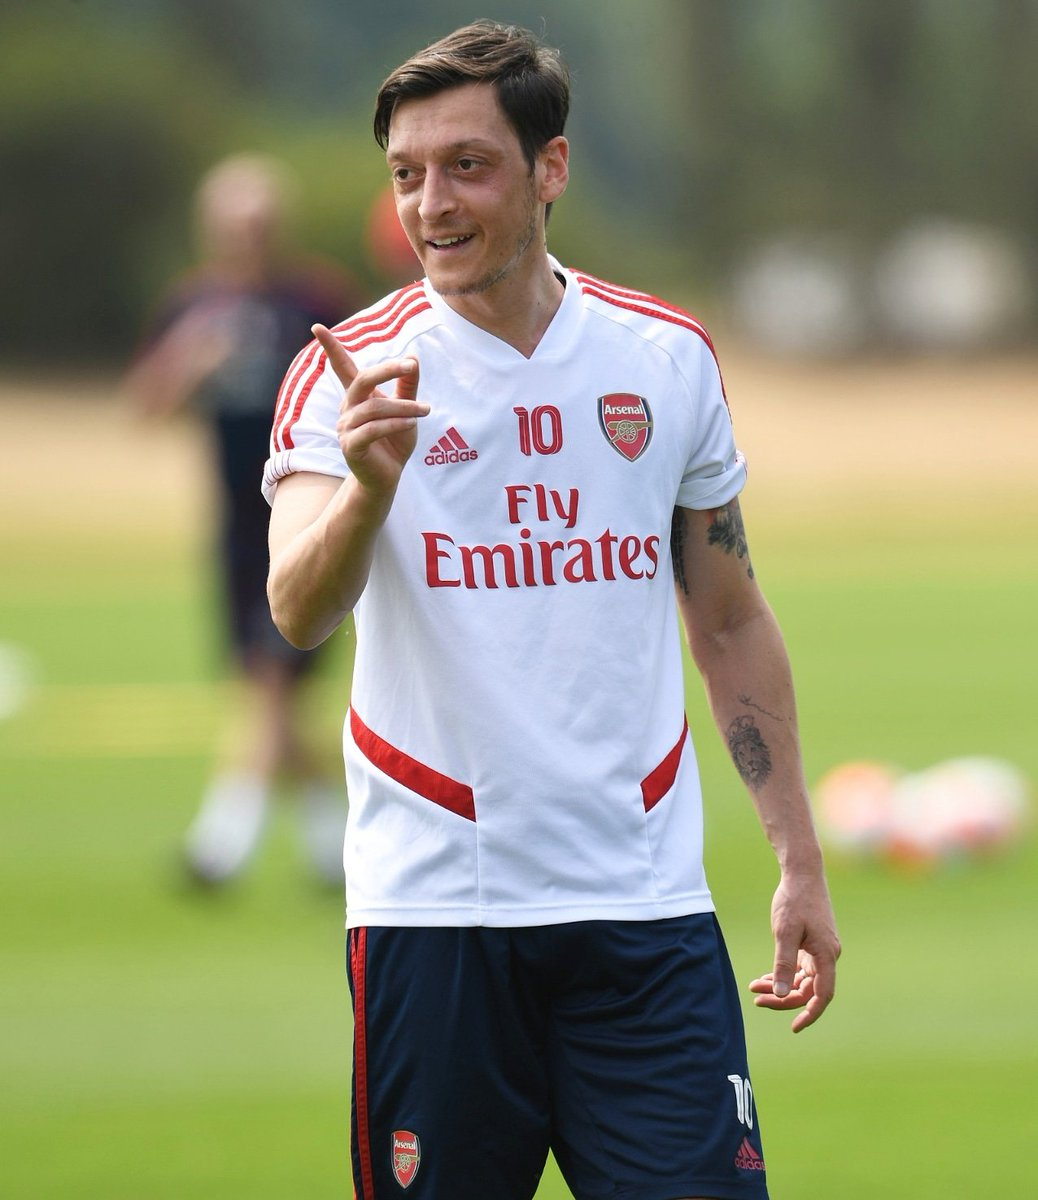 Still such a good feeling to be back out here on the training ground ❤️⚽🍃 #M1Ö #YaGunnersYa